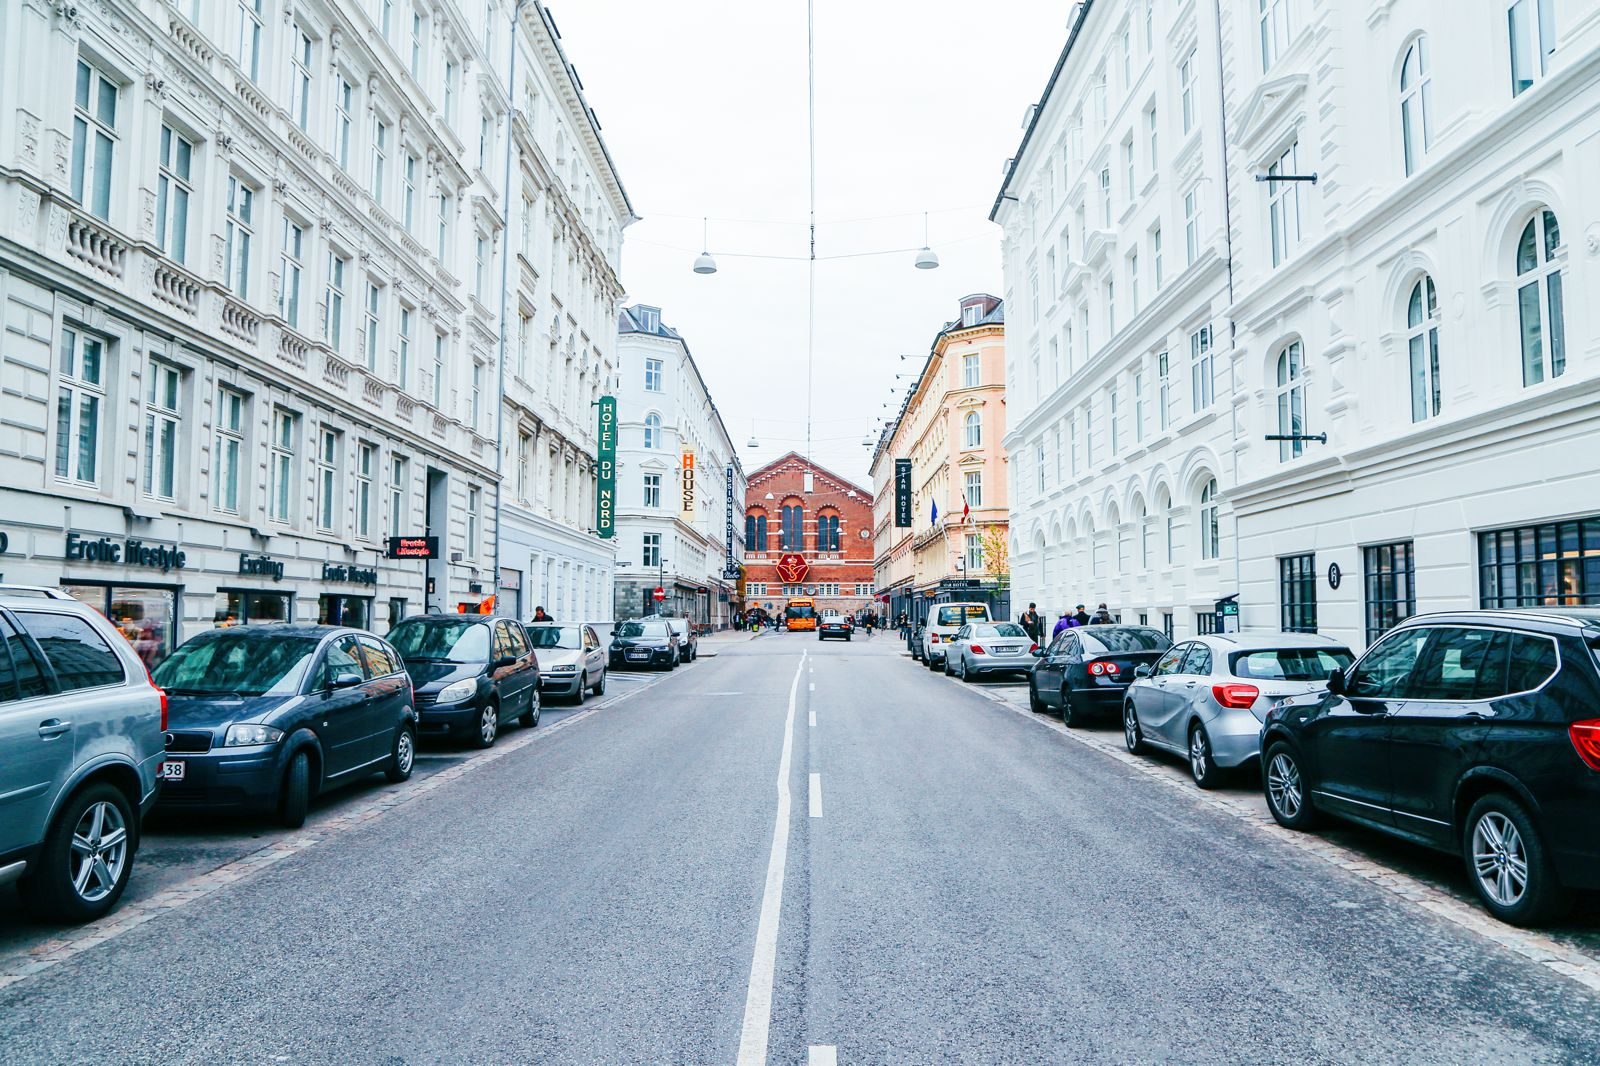 The Complete Guide On All The Things To See, Eat And Do In Copenhagen, Denmark (14)